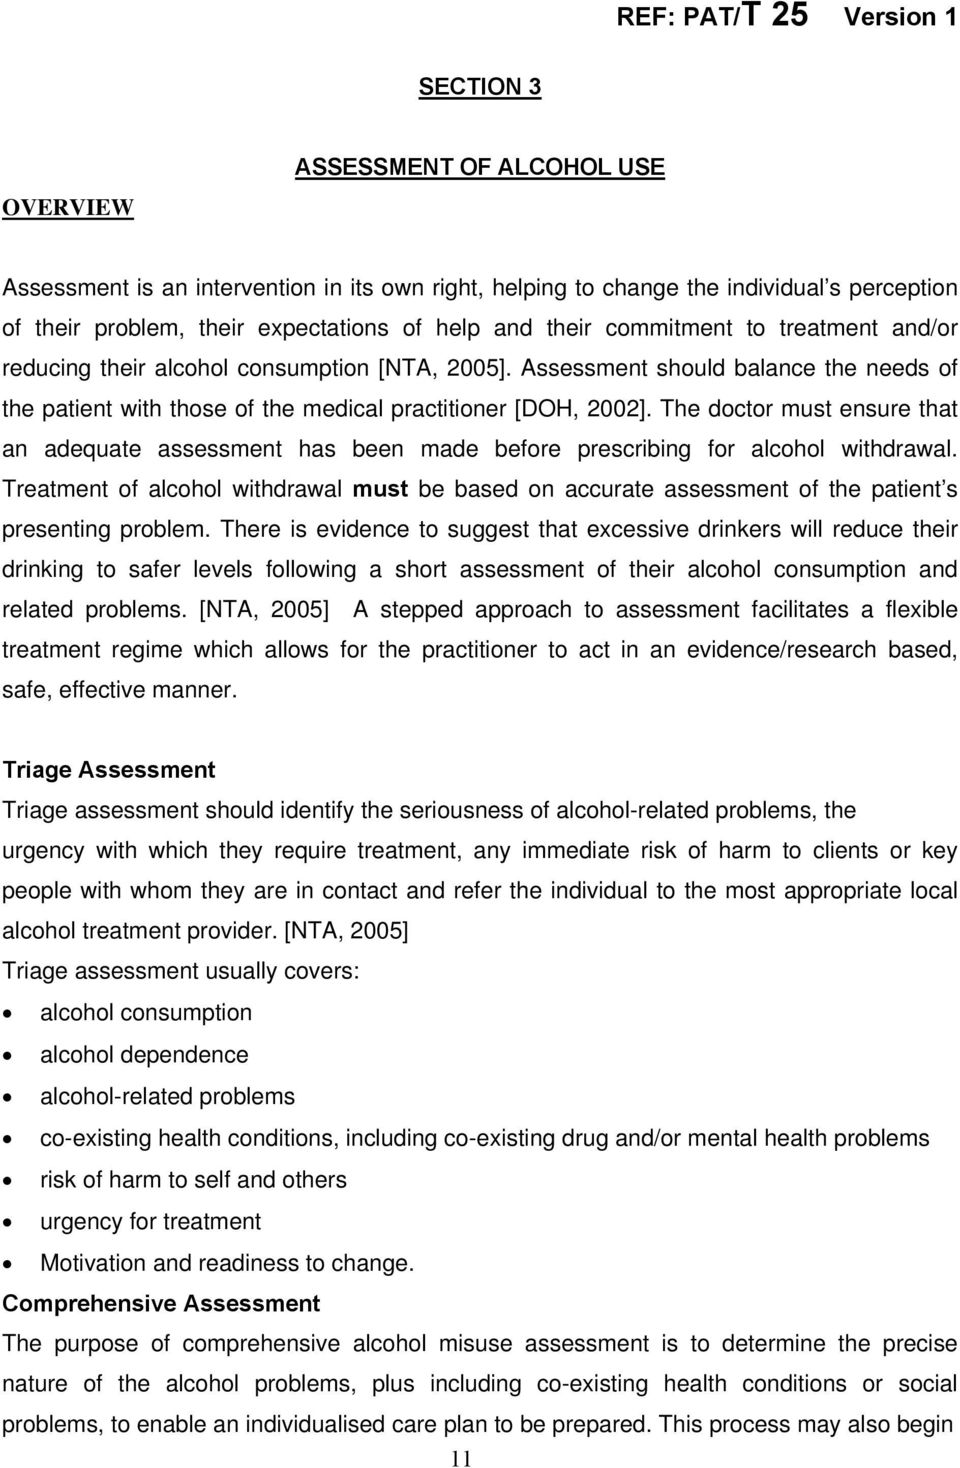 The doctor must ensure that an adequate assessment has been made before prescribing for alcohol withdrawal.